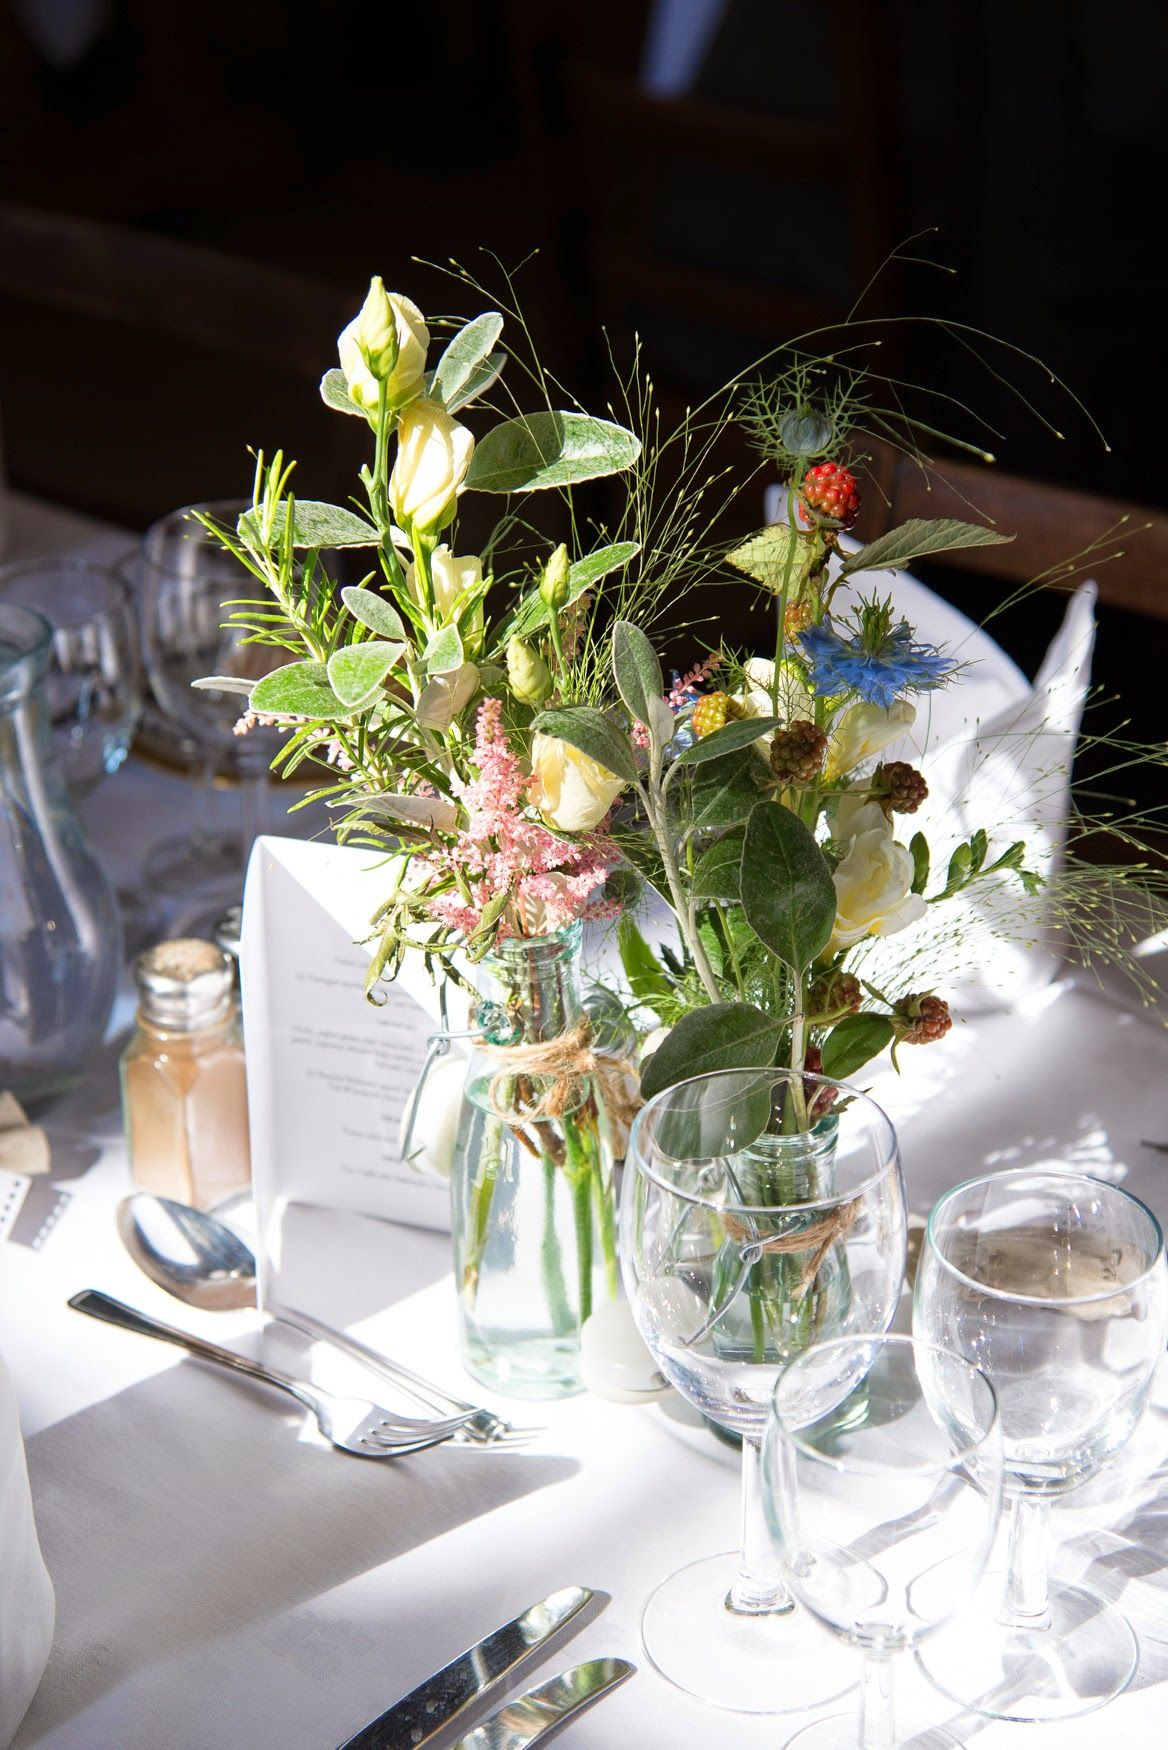 Natural wild flower table vases for that just picked look by natural wild flower table vases for that just picked look by jemini flowers izmirmasajfo